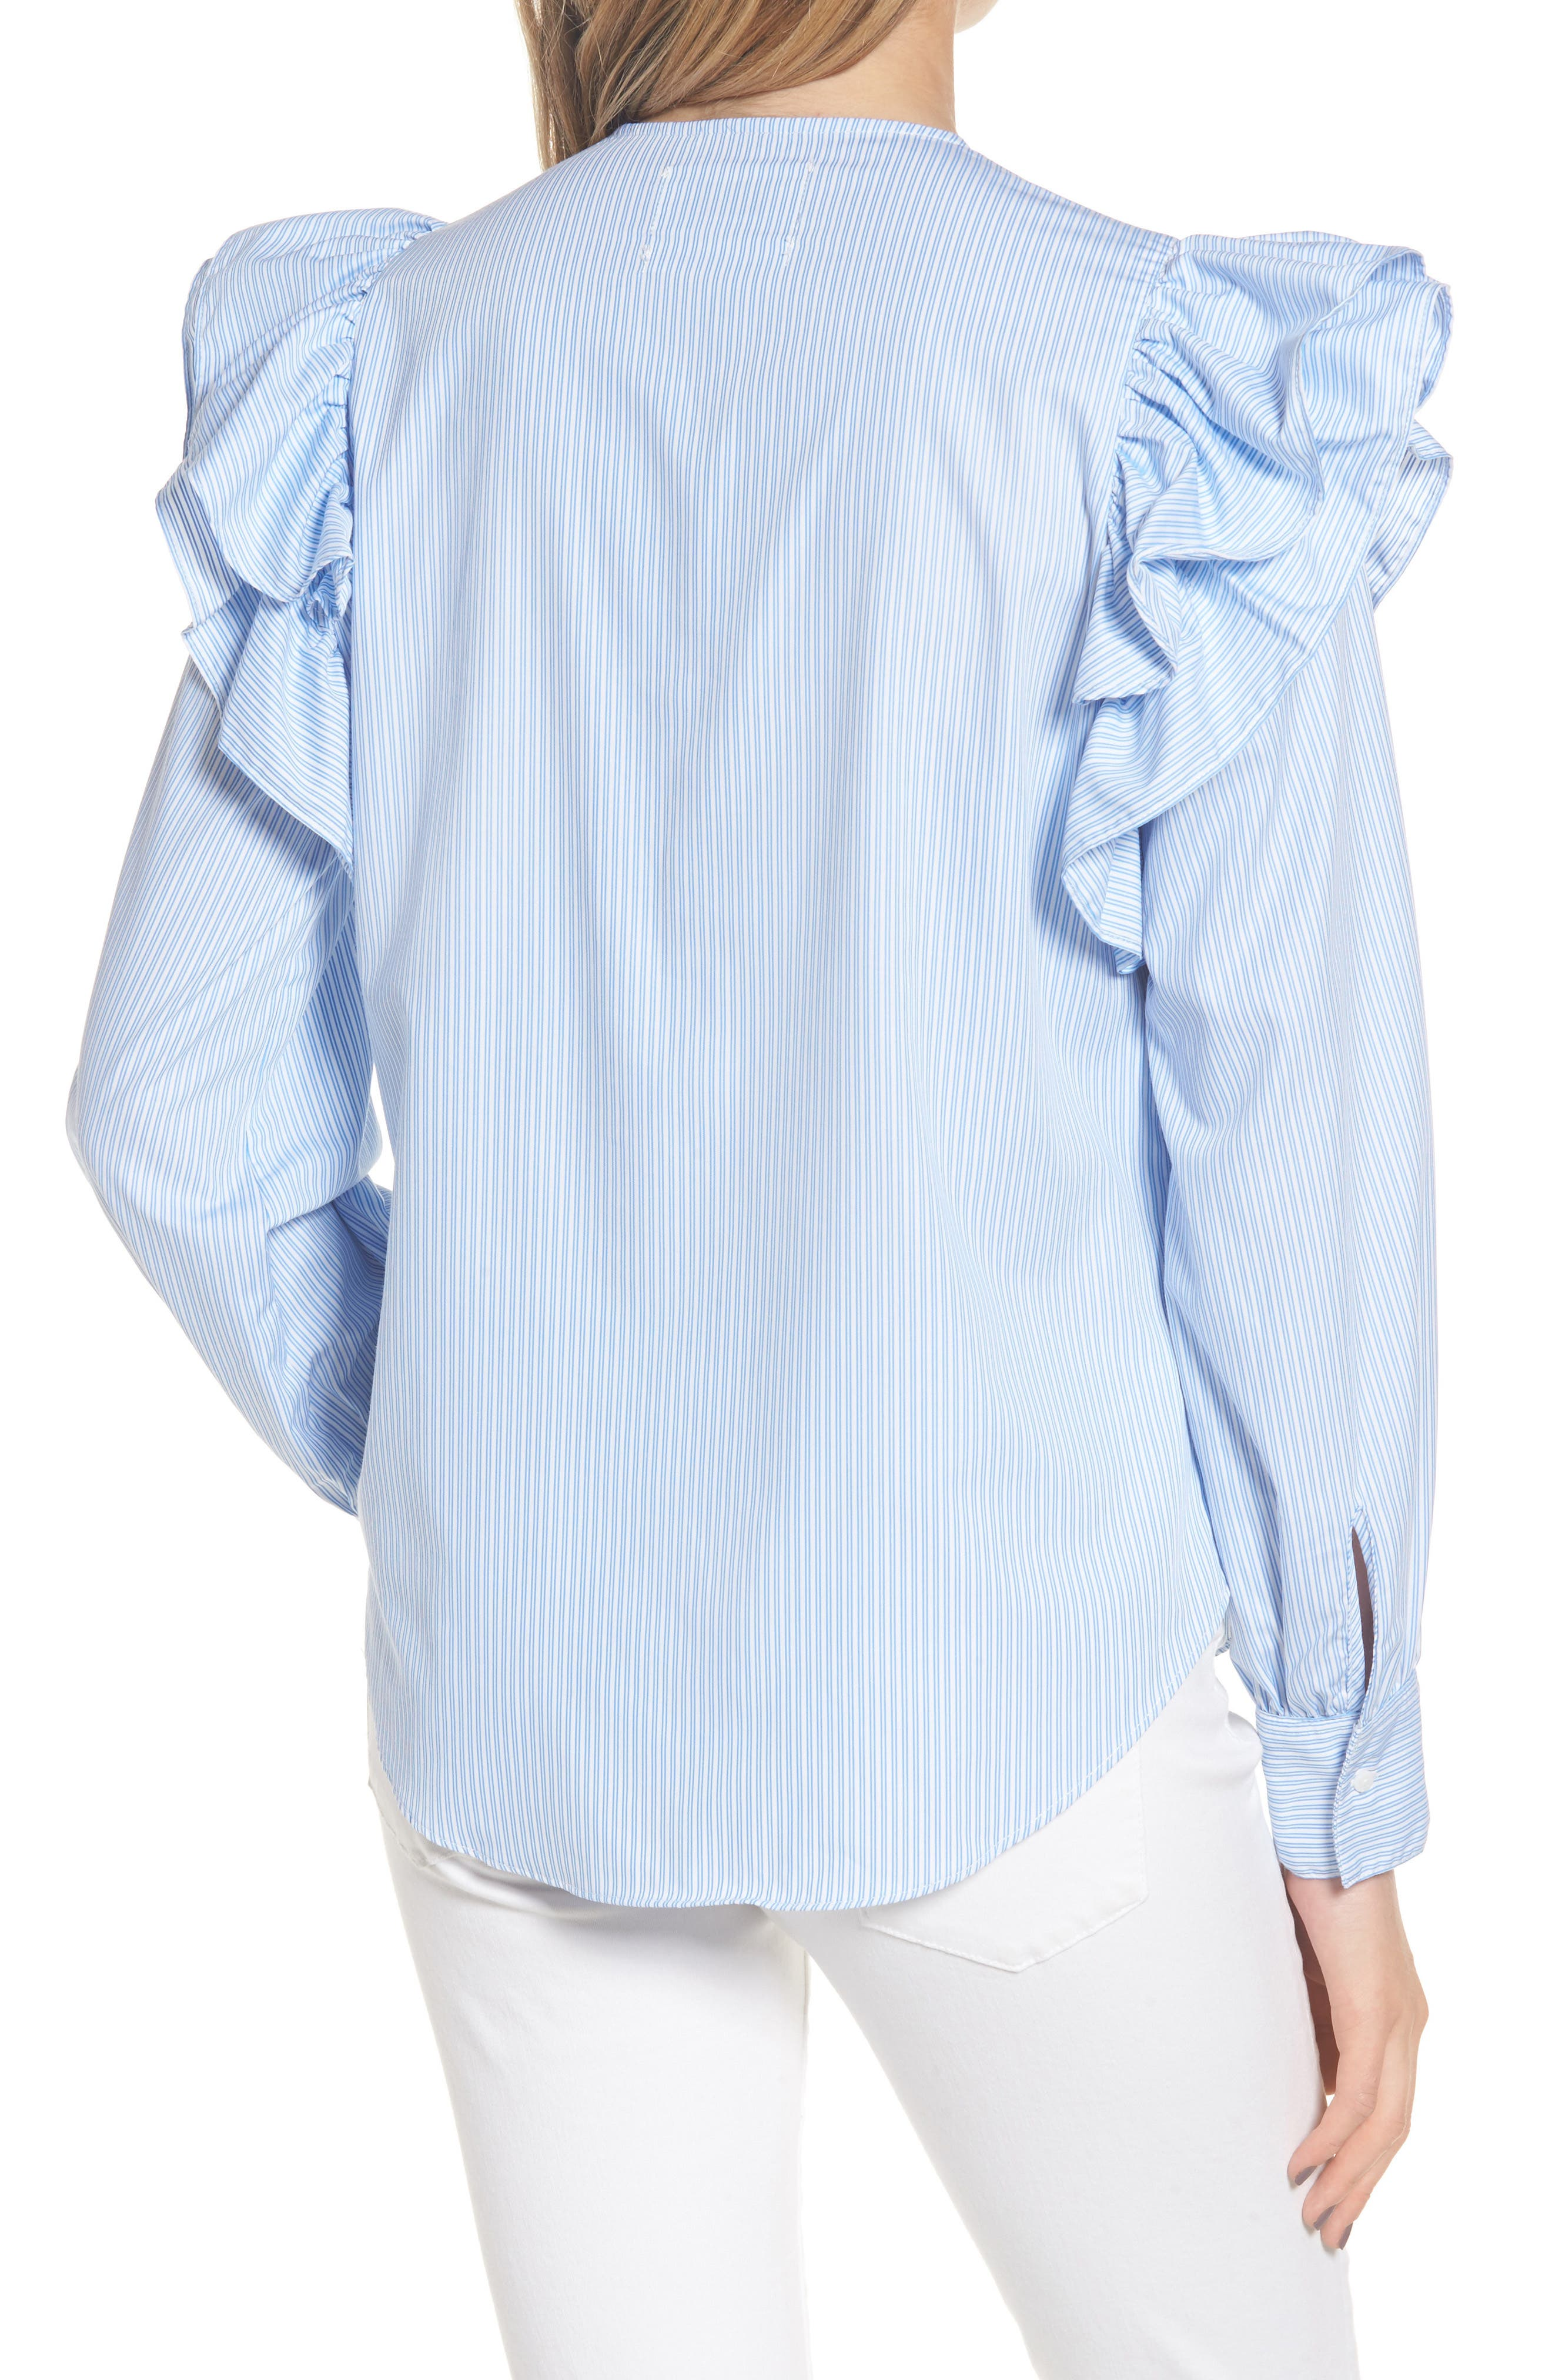 Girl Meets Boy Ruffle Top,                             Alternate thumbnail 3, color,                             Striped Blue